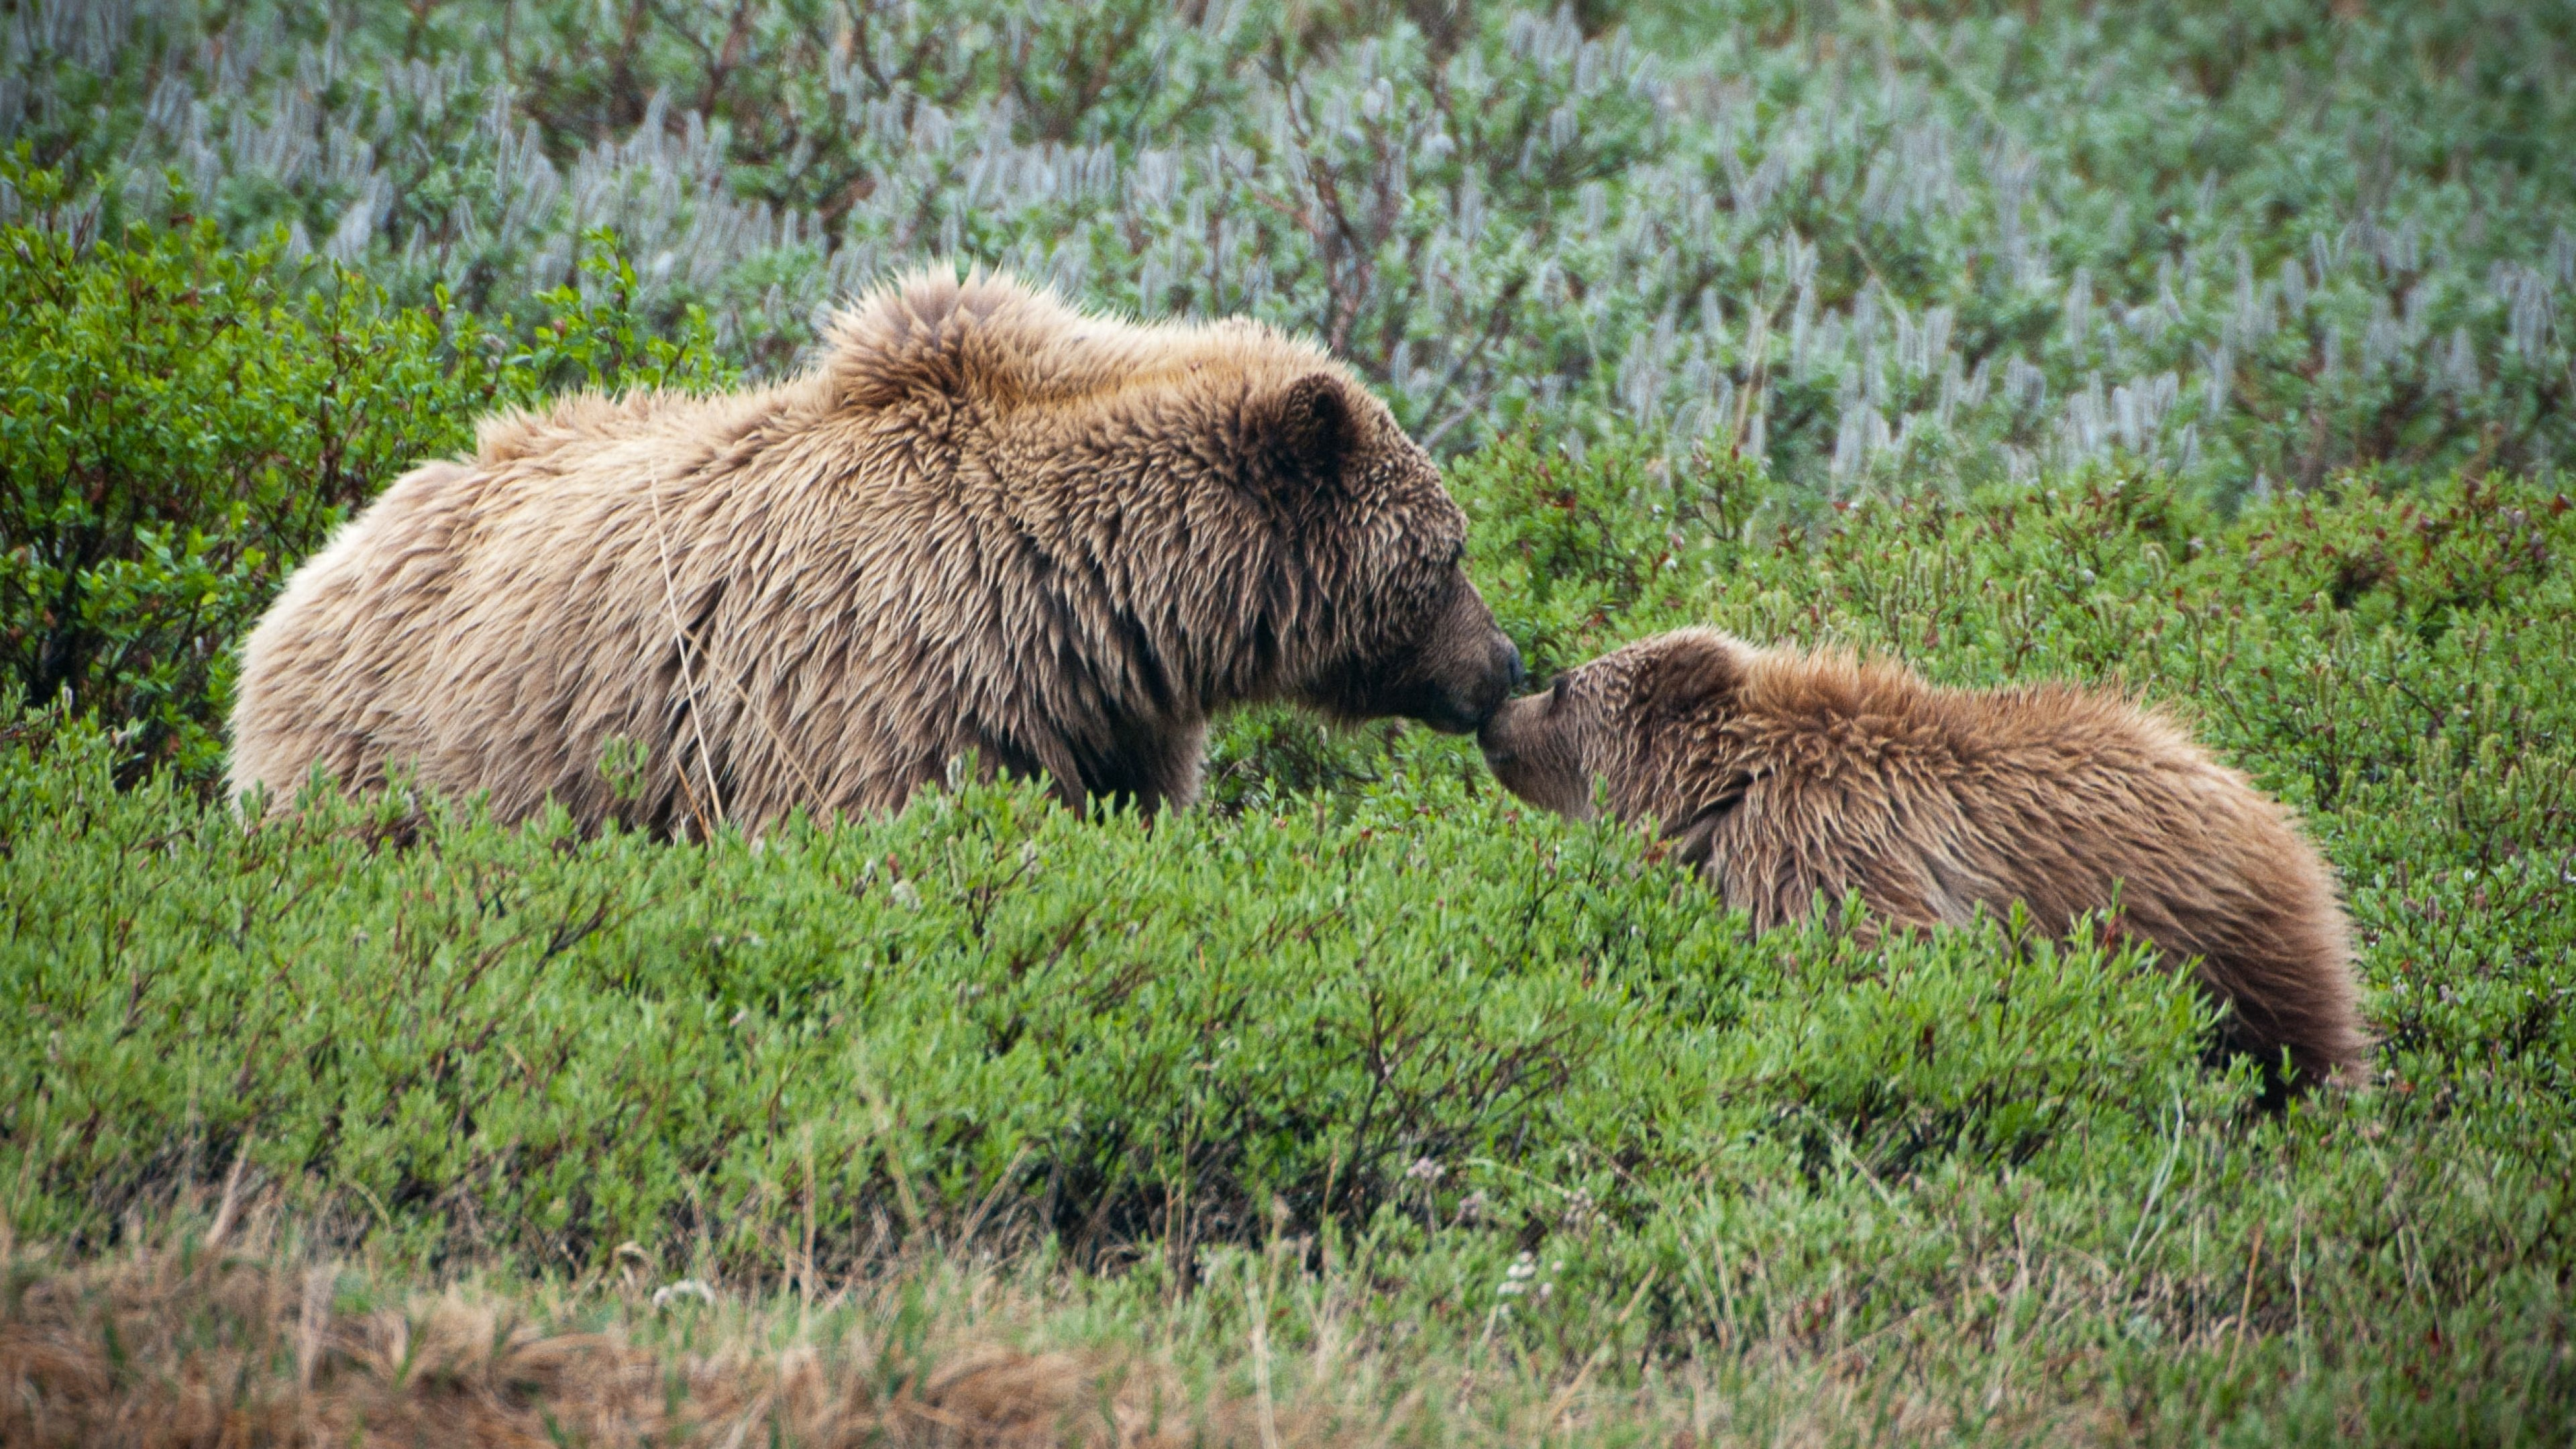 A sow and cub touch noses in a green field